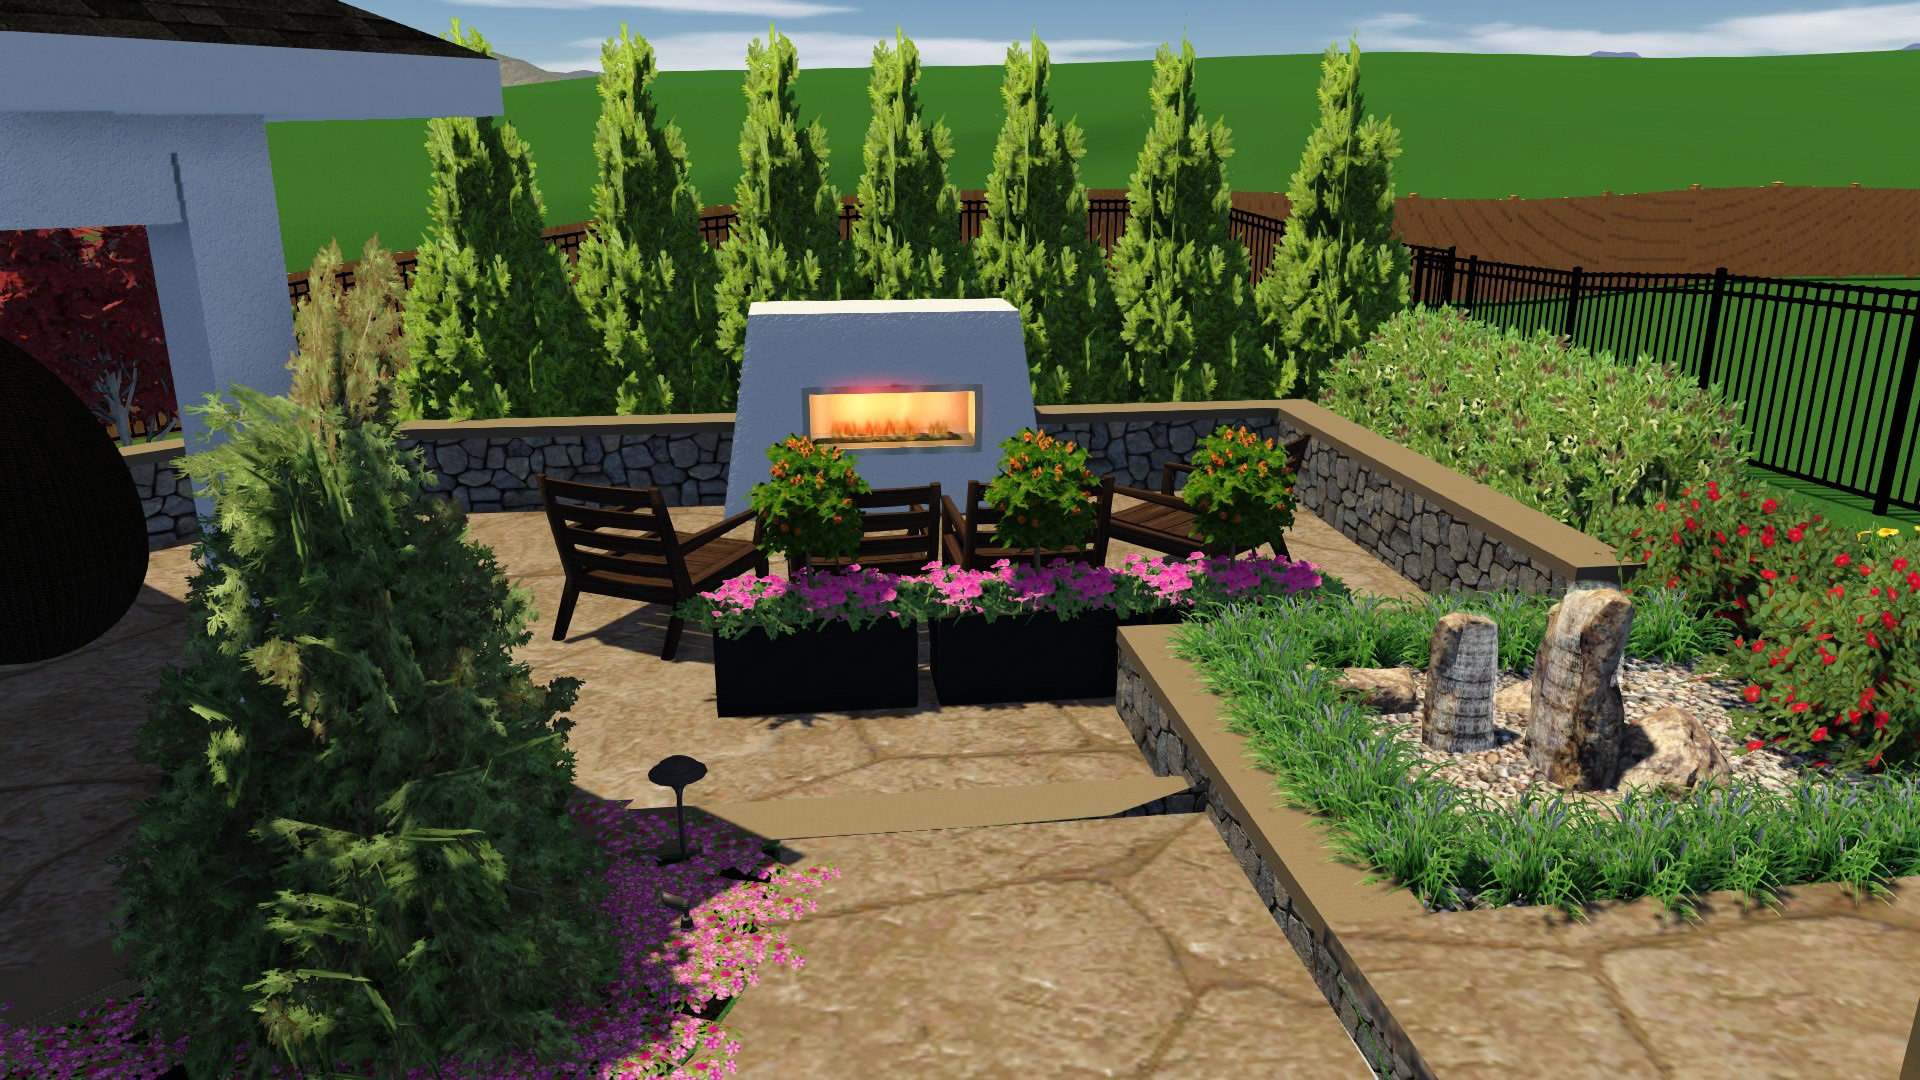 The first destination in this MasterPLAN Outdoor Living space is complete with a custom natural gas fireplace, nearby basalt spire water feature and surrounding seating wall to create the ultimate cozy relaxation and conversation zone.